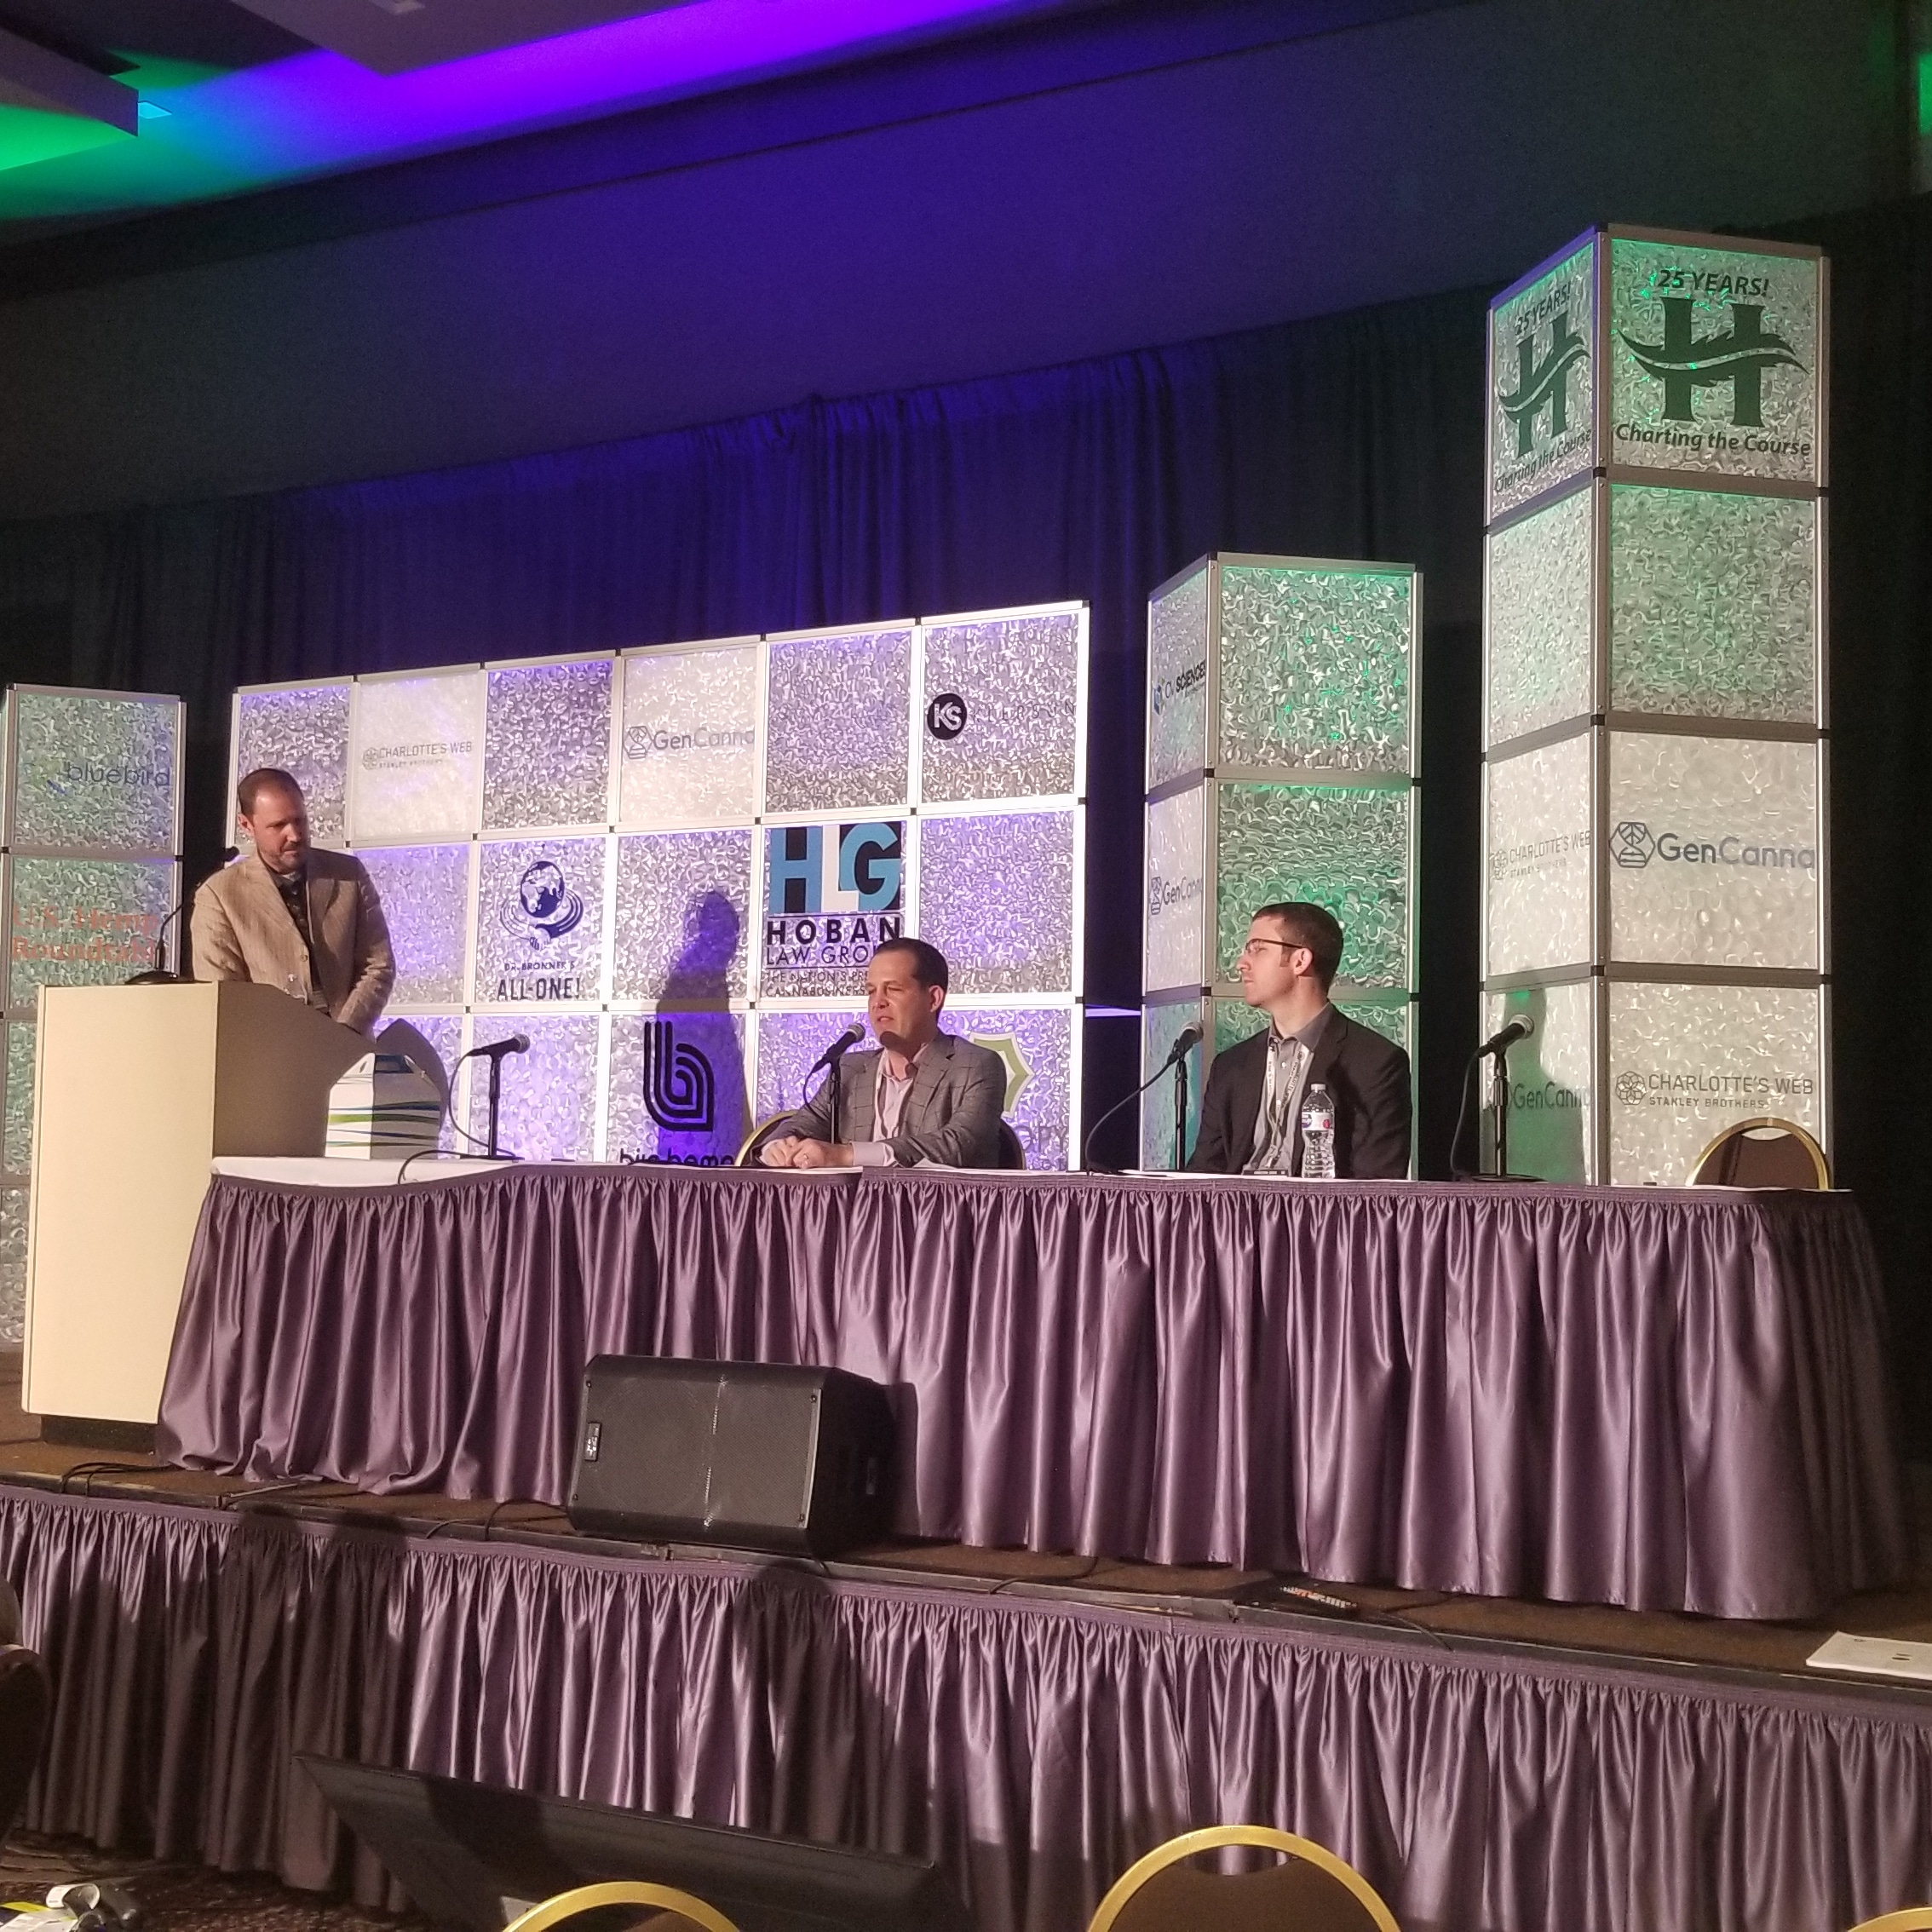 Representatives of U.S. Hemp Roundtable and Hoban Law Firm discussed hemp's legal future at the 2018 Hemp Industries Association Conference in Los Angeles.